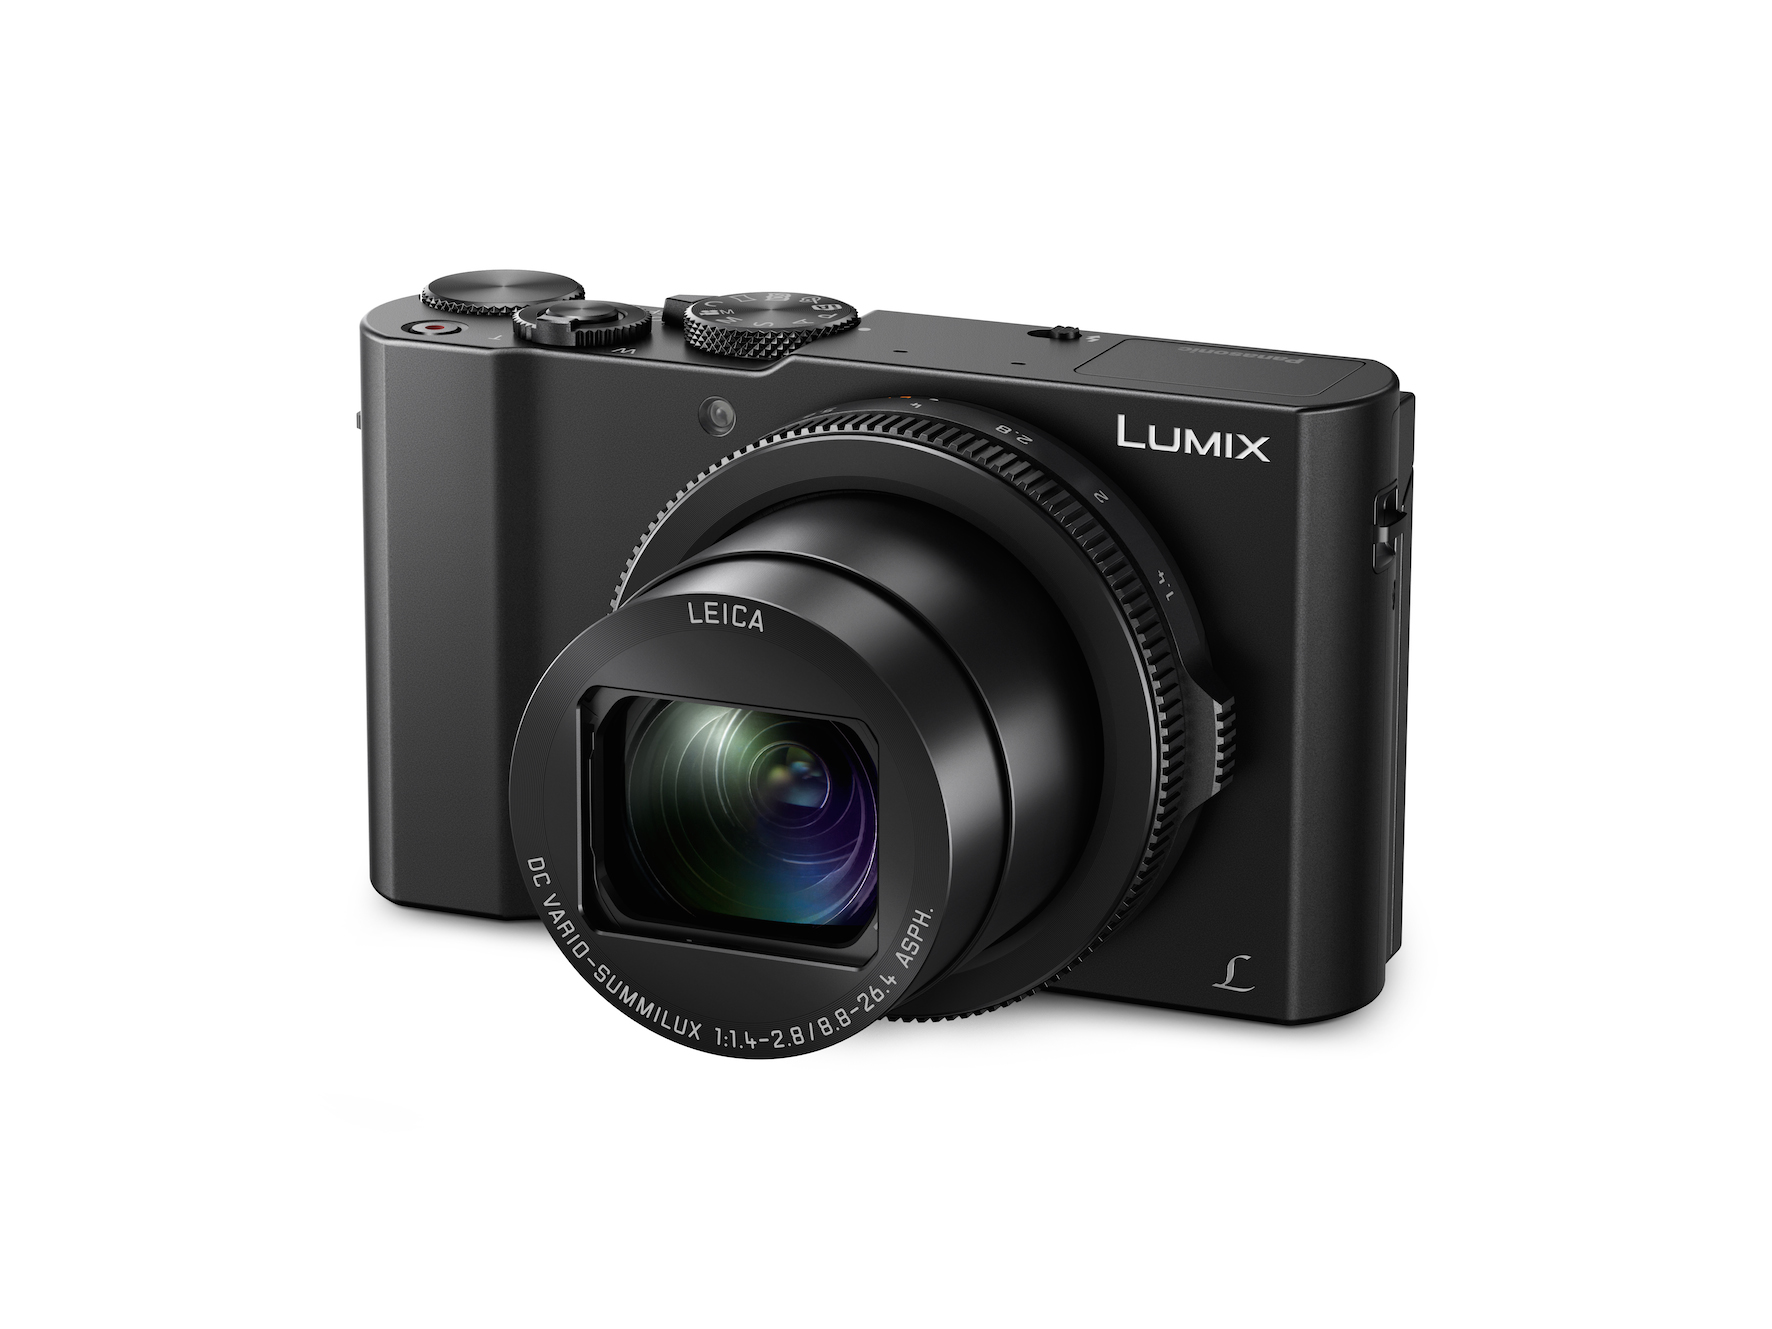 lumix lx15 kompakter lichtriese gro er 1 zoll sensor mit 20 megapixeln leica summilux. Black Bedroom Furniture Sets. Home Design Ideas